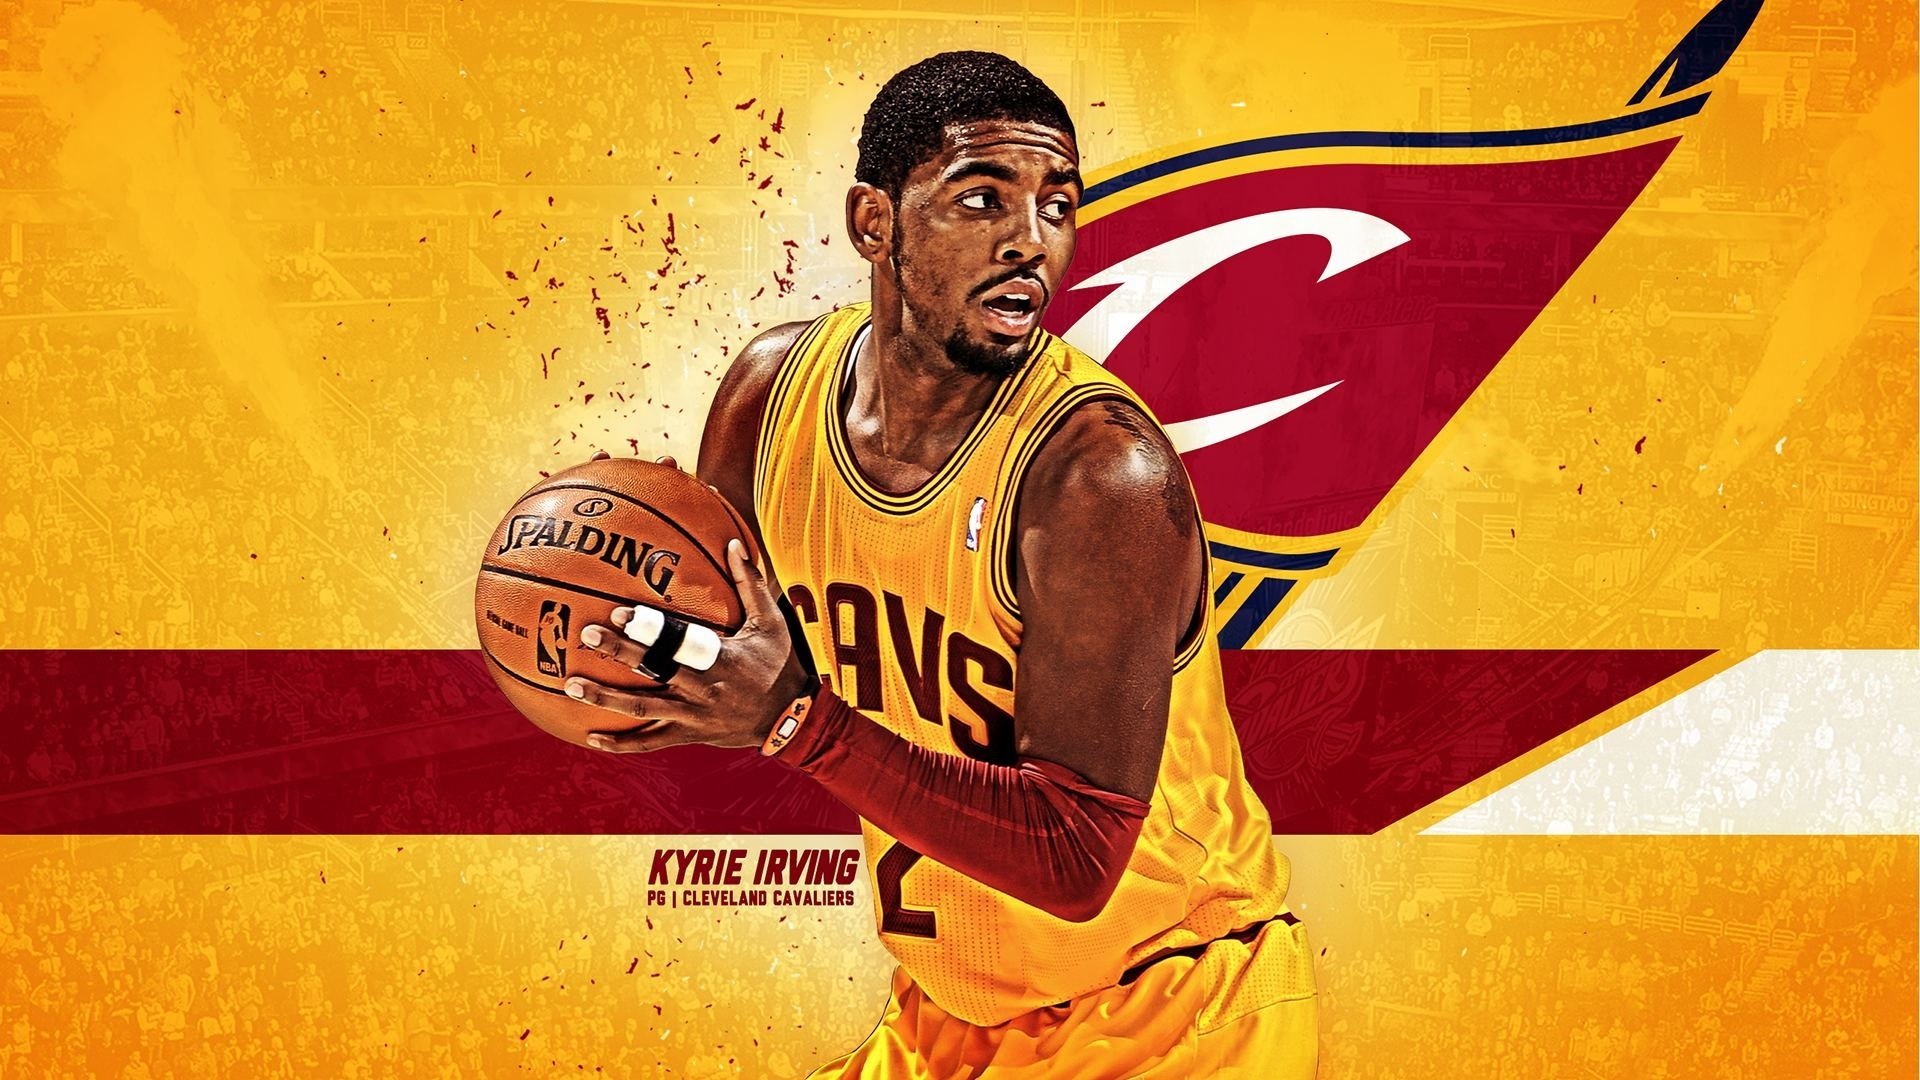 kyrie irving wallpapers hd | pixelstalk